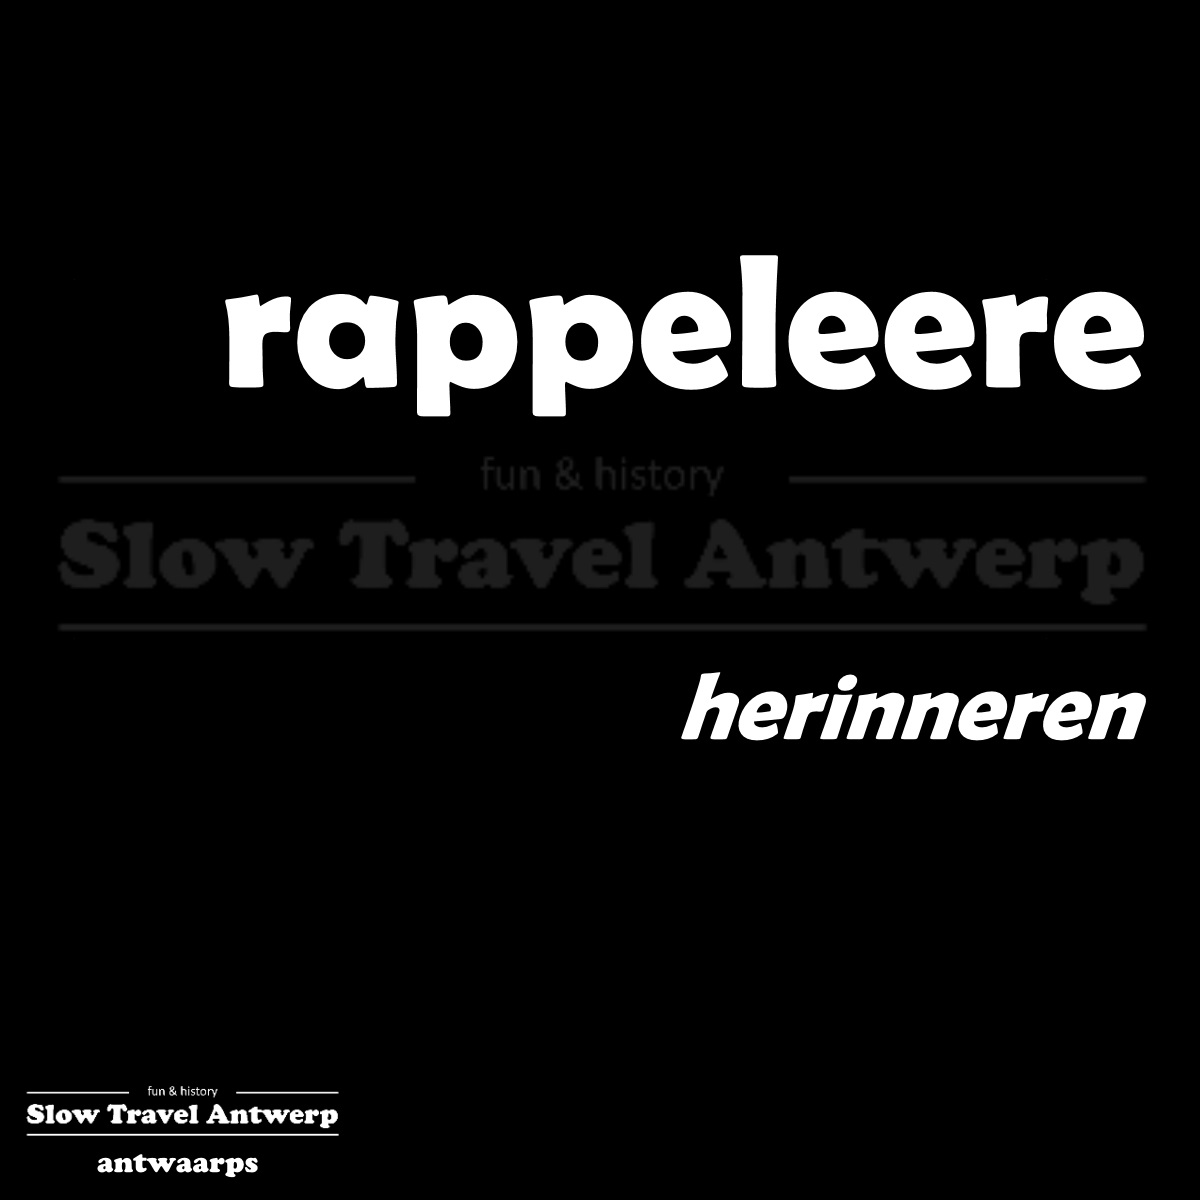 rappeleere – herinneren – to remember